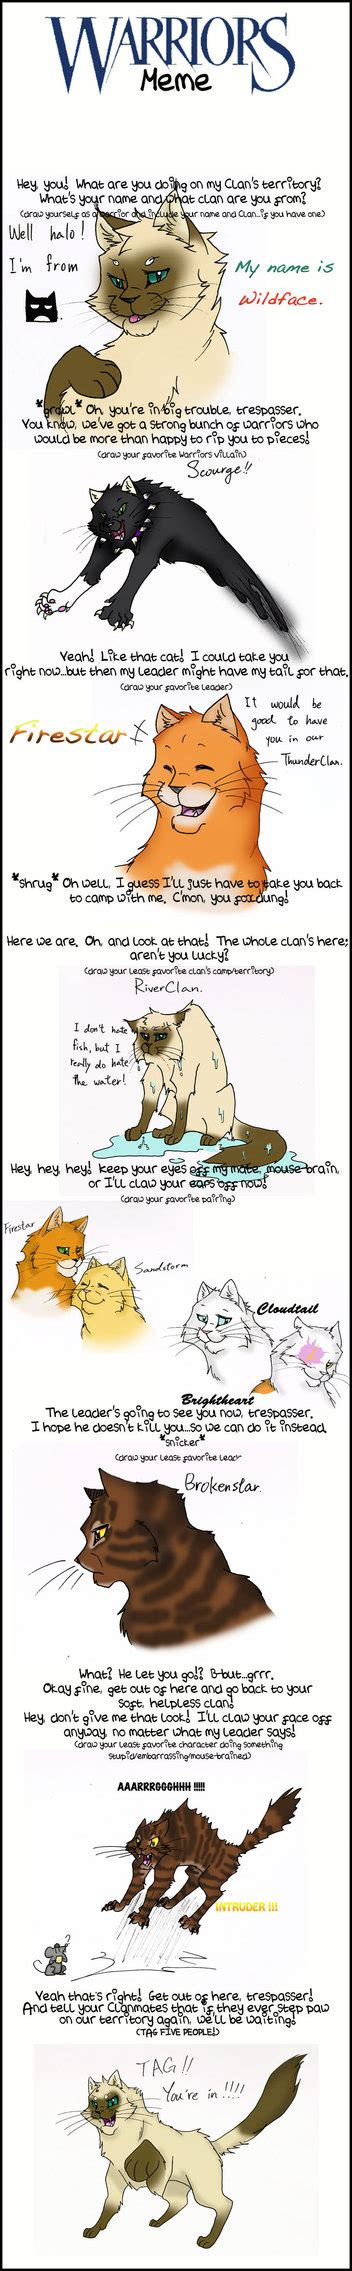 Warrior Cats Meme - warrior cats meme by cycat on deviantart